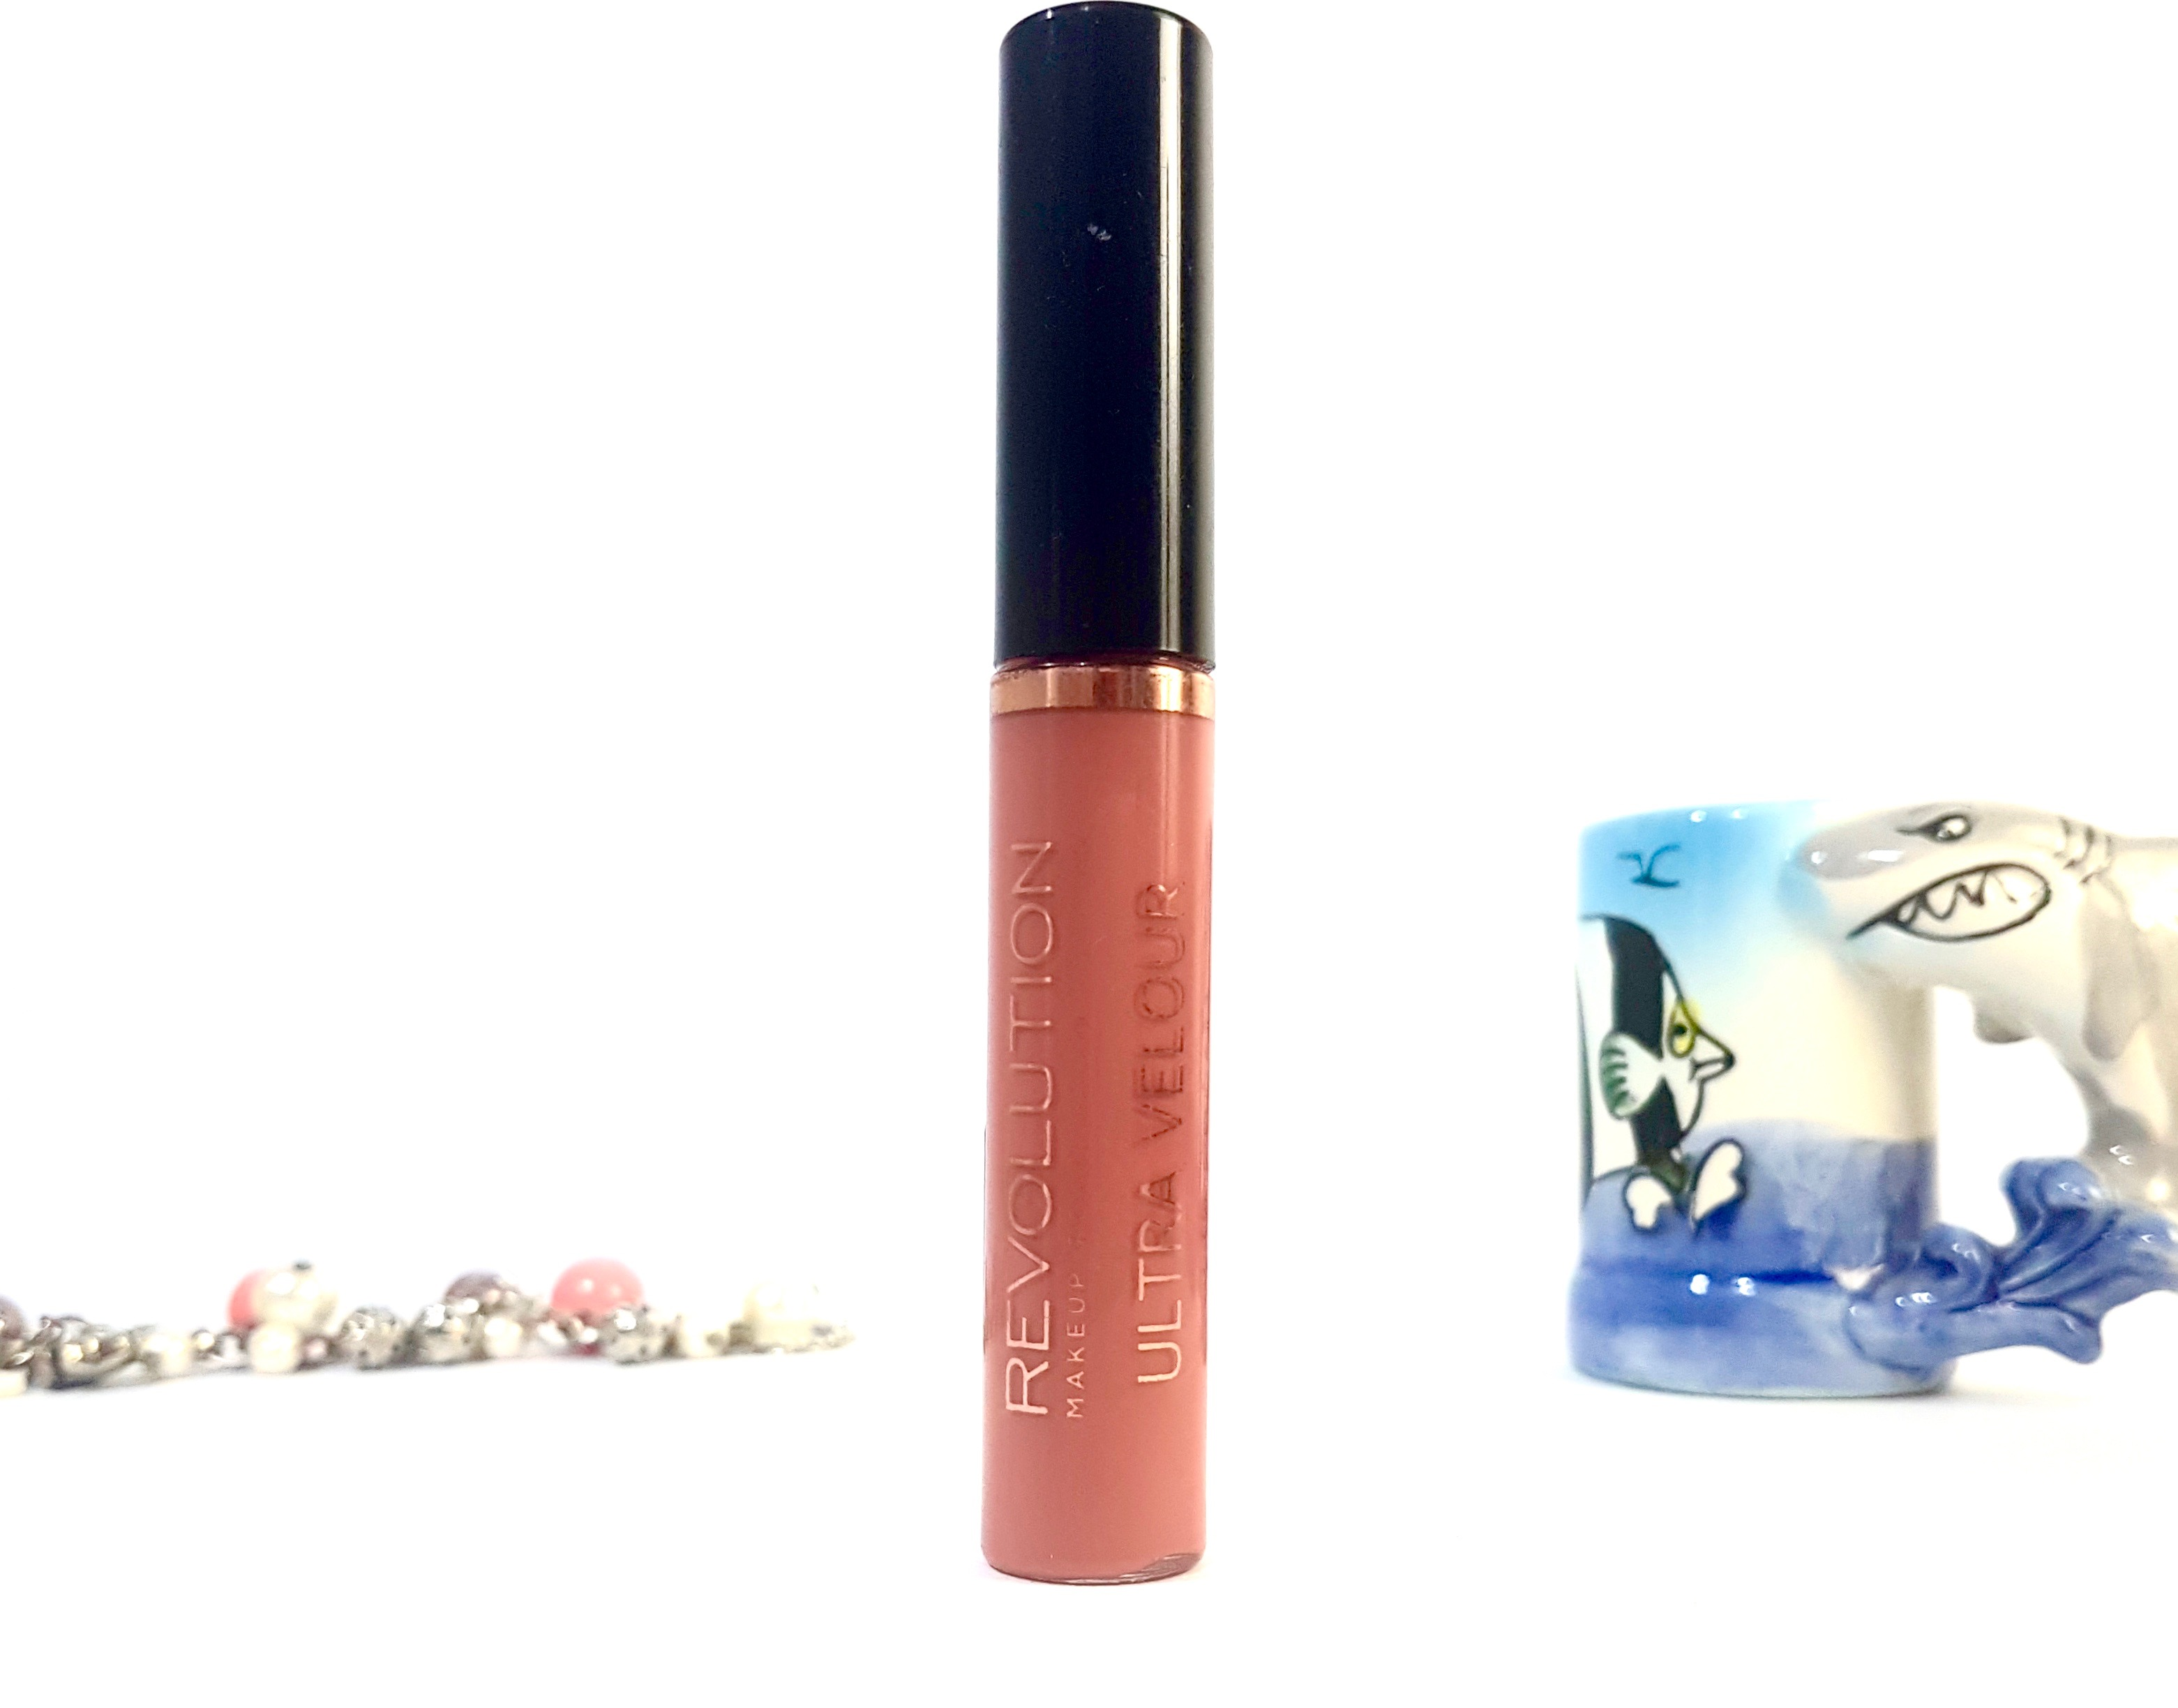 Makeup Revolution Ultra Velour Lip Cream Cant We Just Make Love Instead Review, Swatches